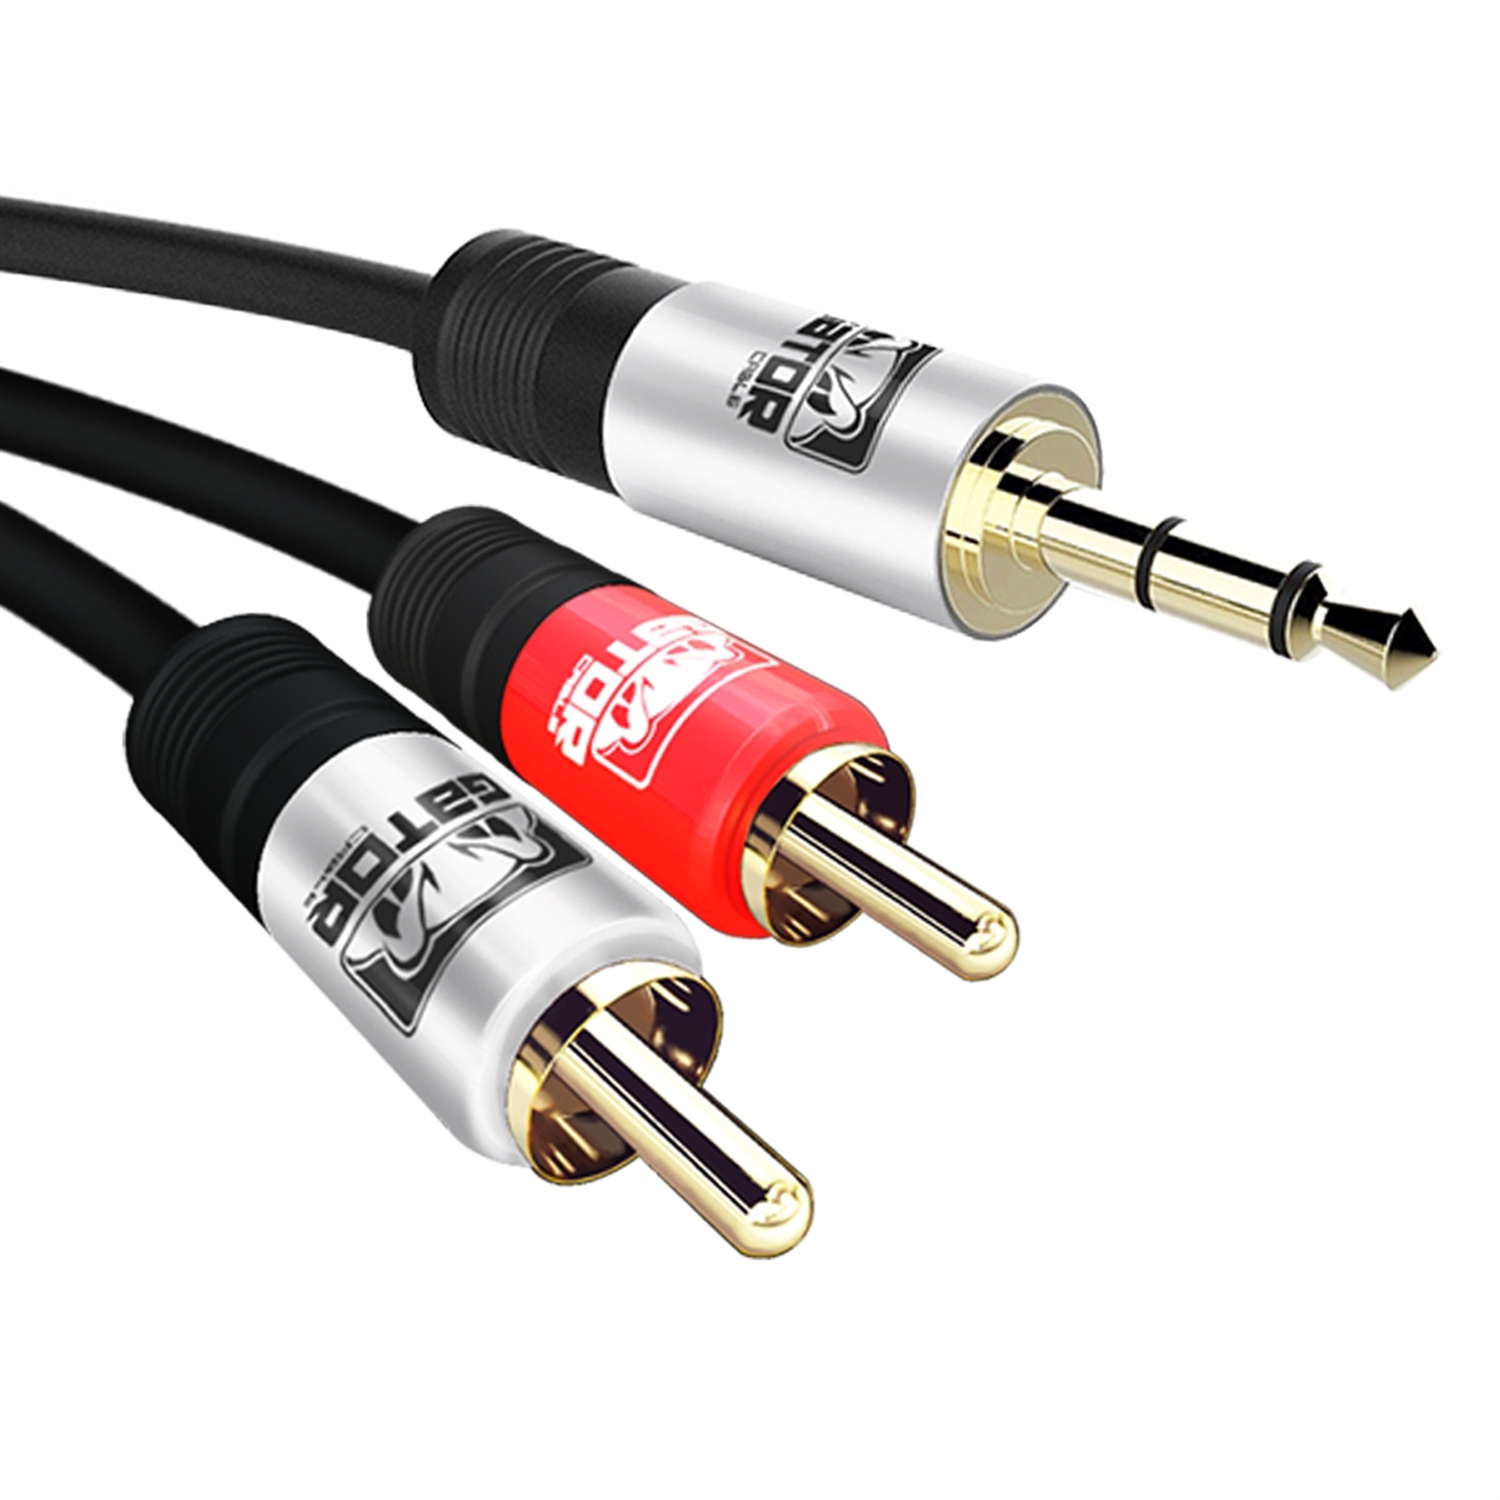 GATOR CABLE AUX to 2 RCA cable - SILVER/RED-SILVER - 25 FT - Gold Plated Connectors - Auxiliary 3.5mm Audio Plug Stereo Phone Cable Cord